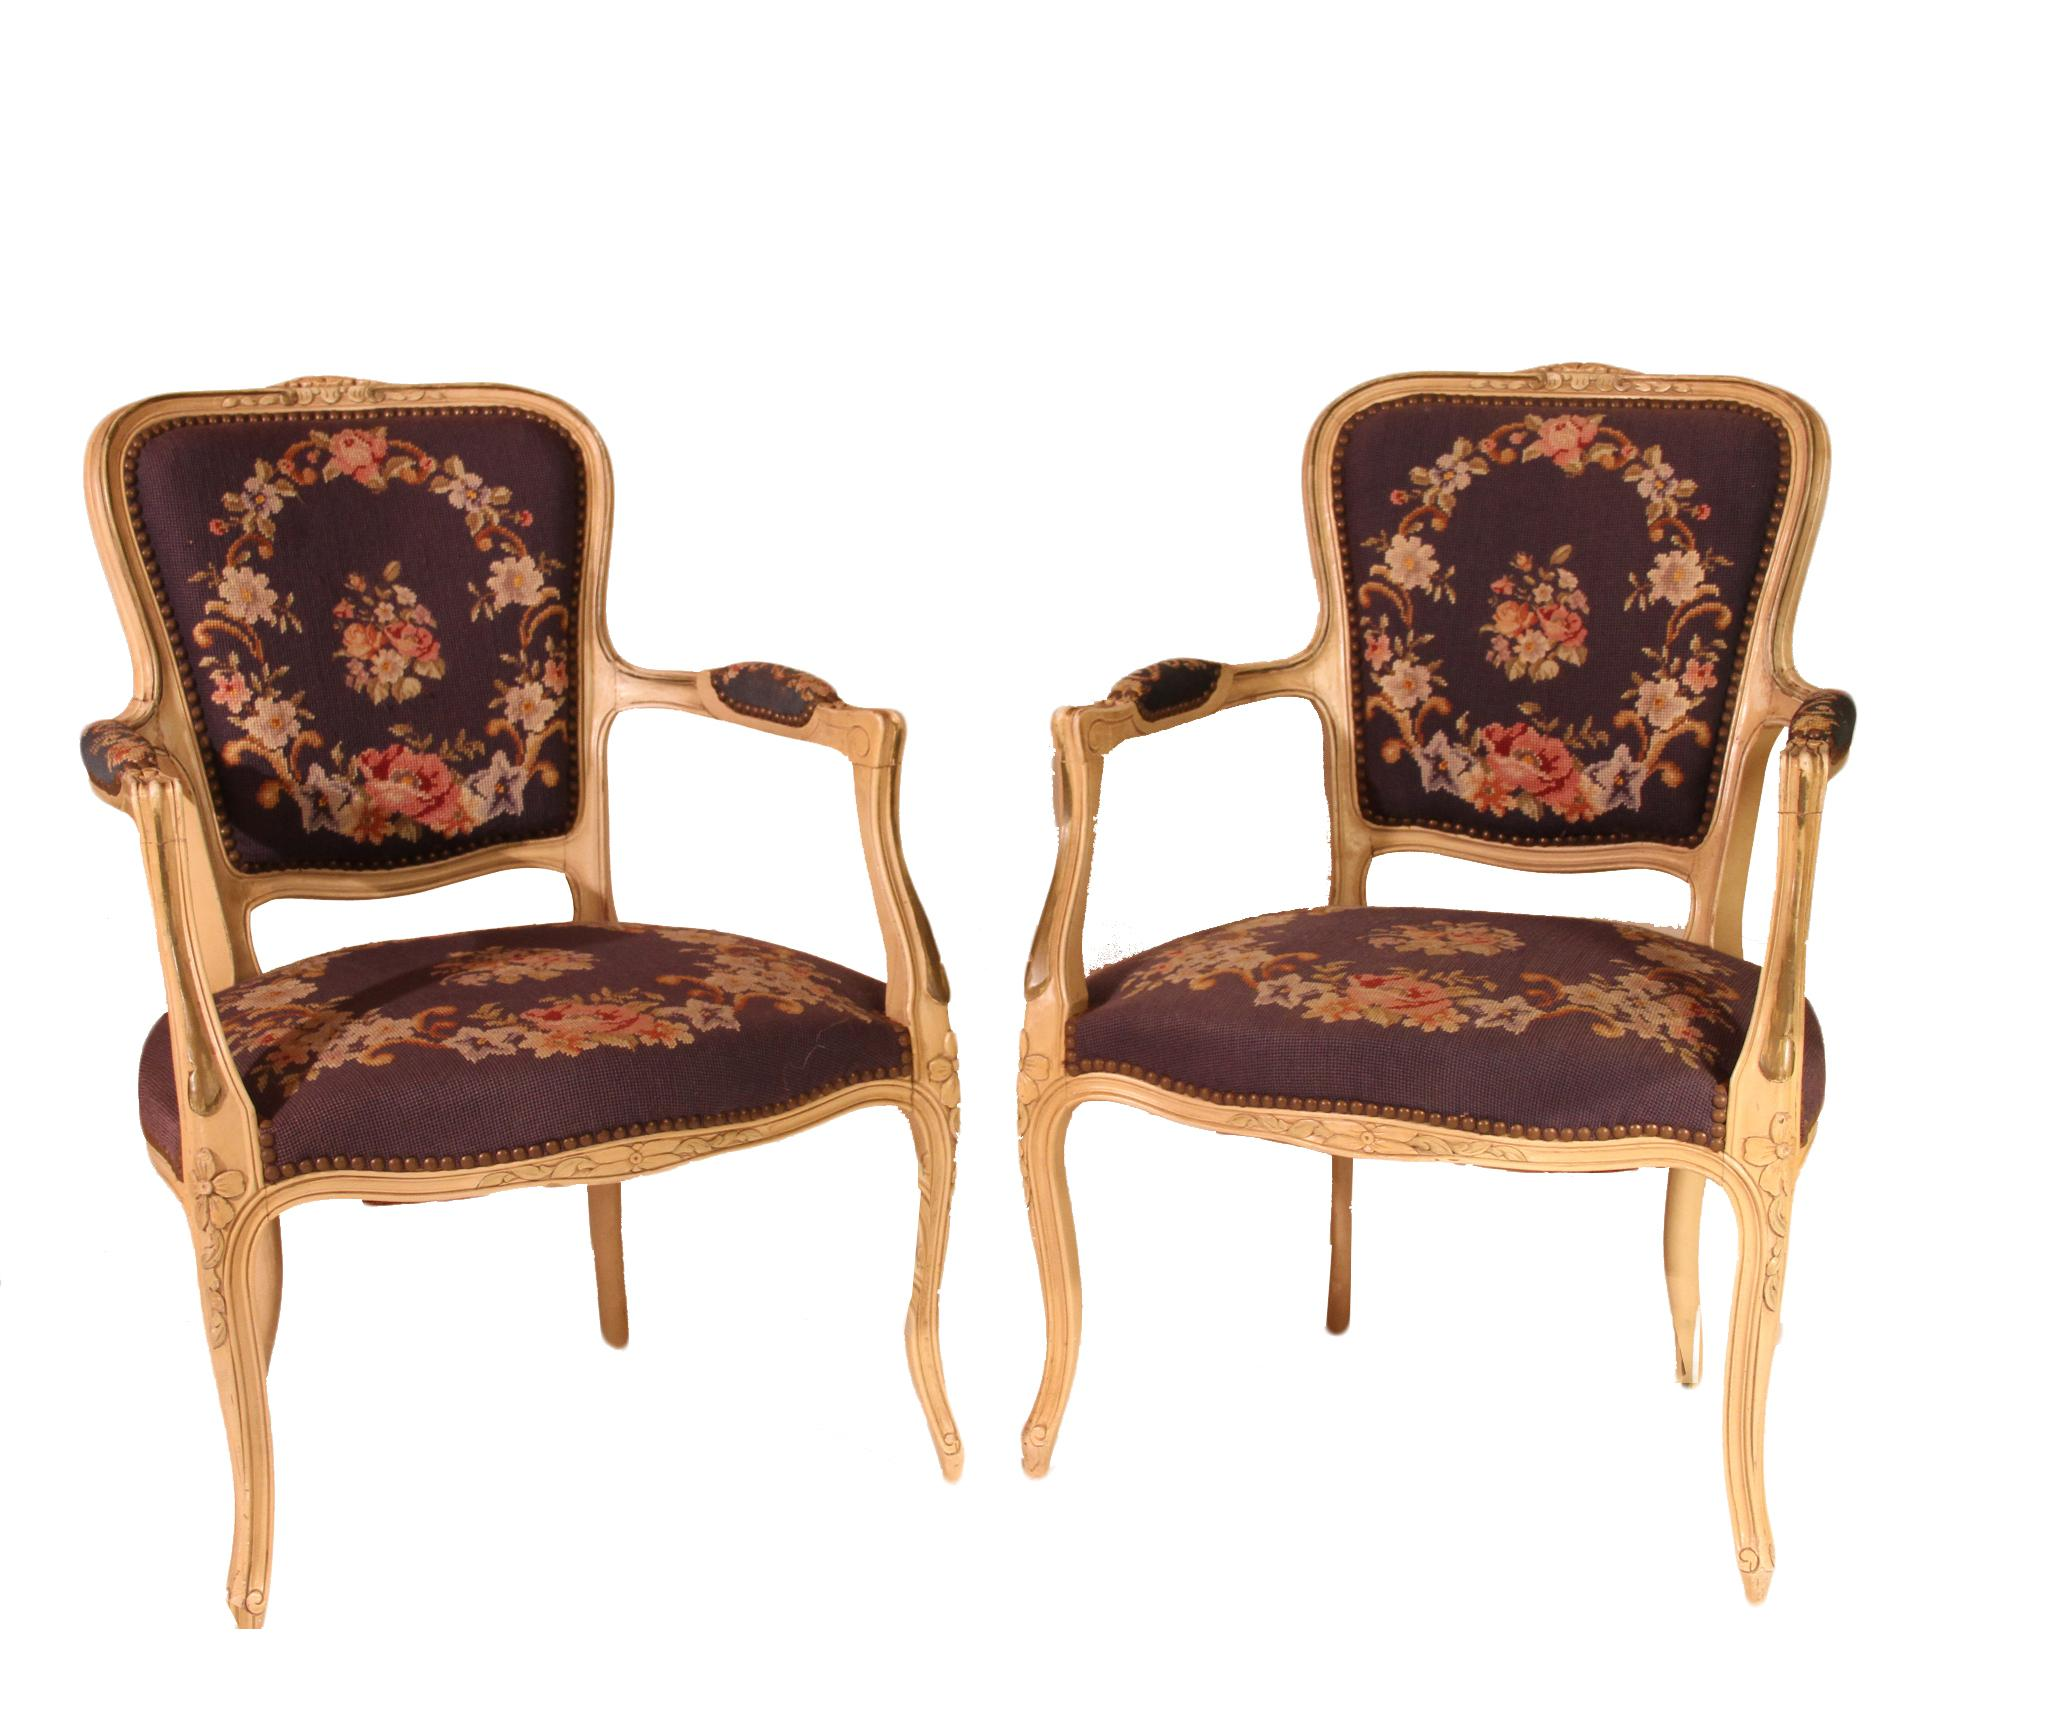 Antique French Louis XV Needlepoint Chairs   A Pair   Image 4 Of 6